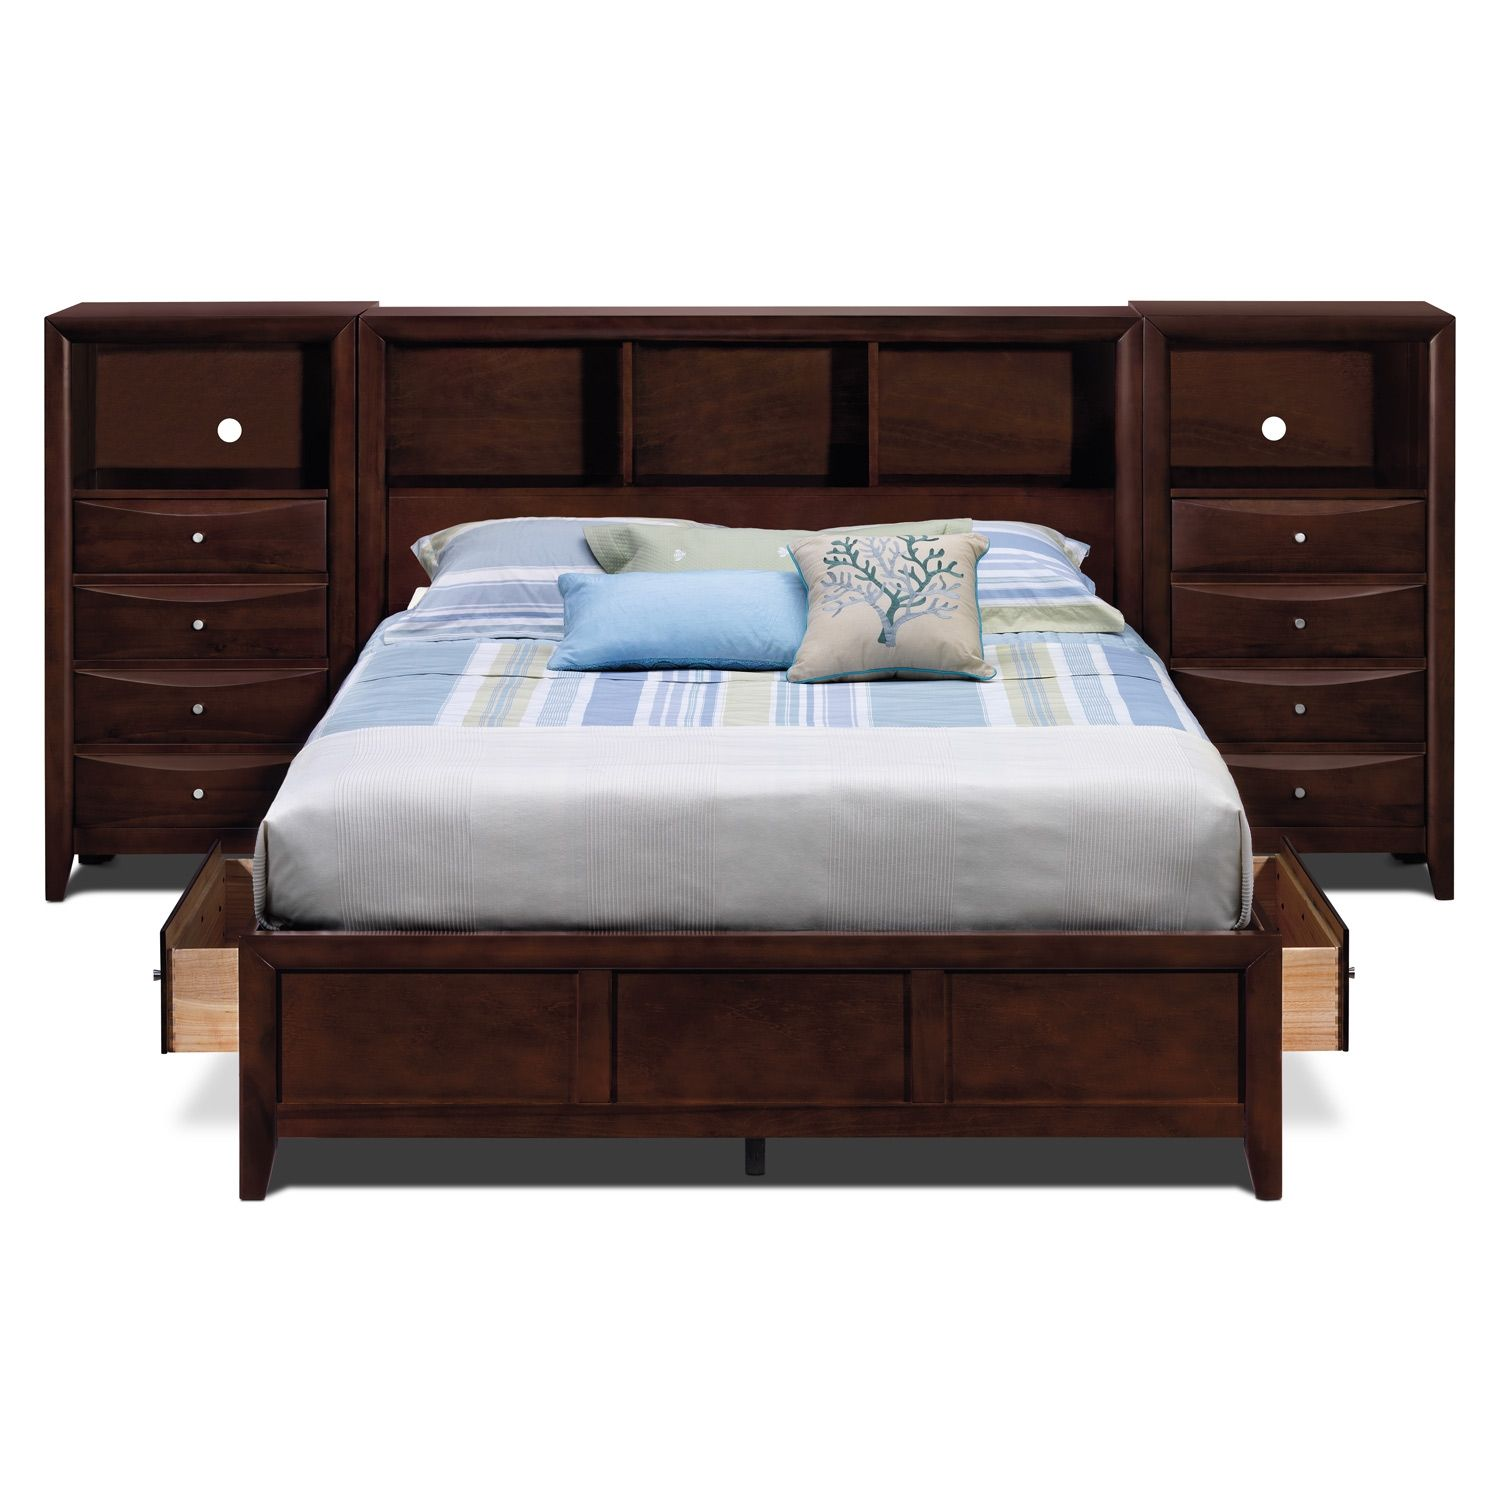 Clarion Bedroom Furniture Google Search Value City Furniture Wall Bed Furniture